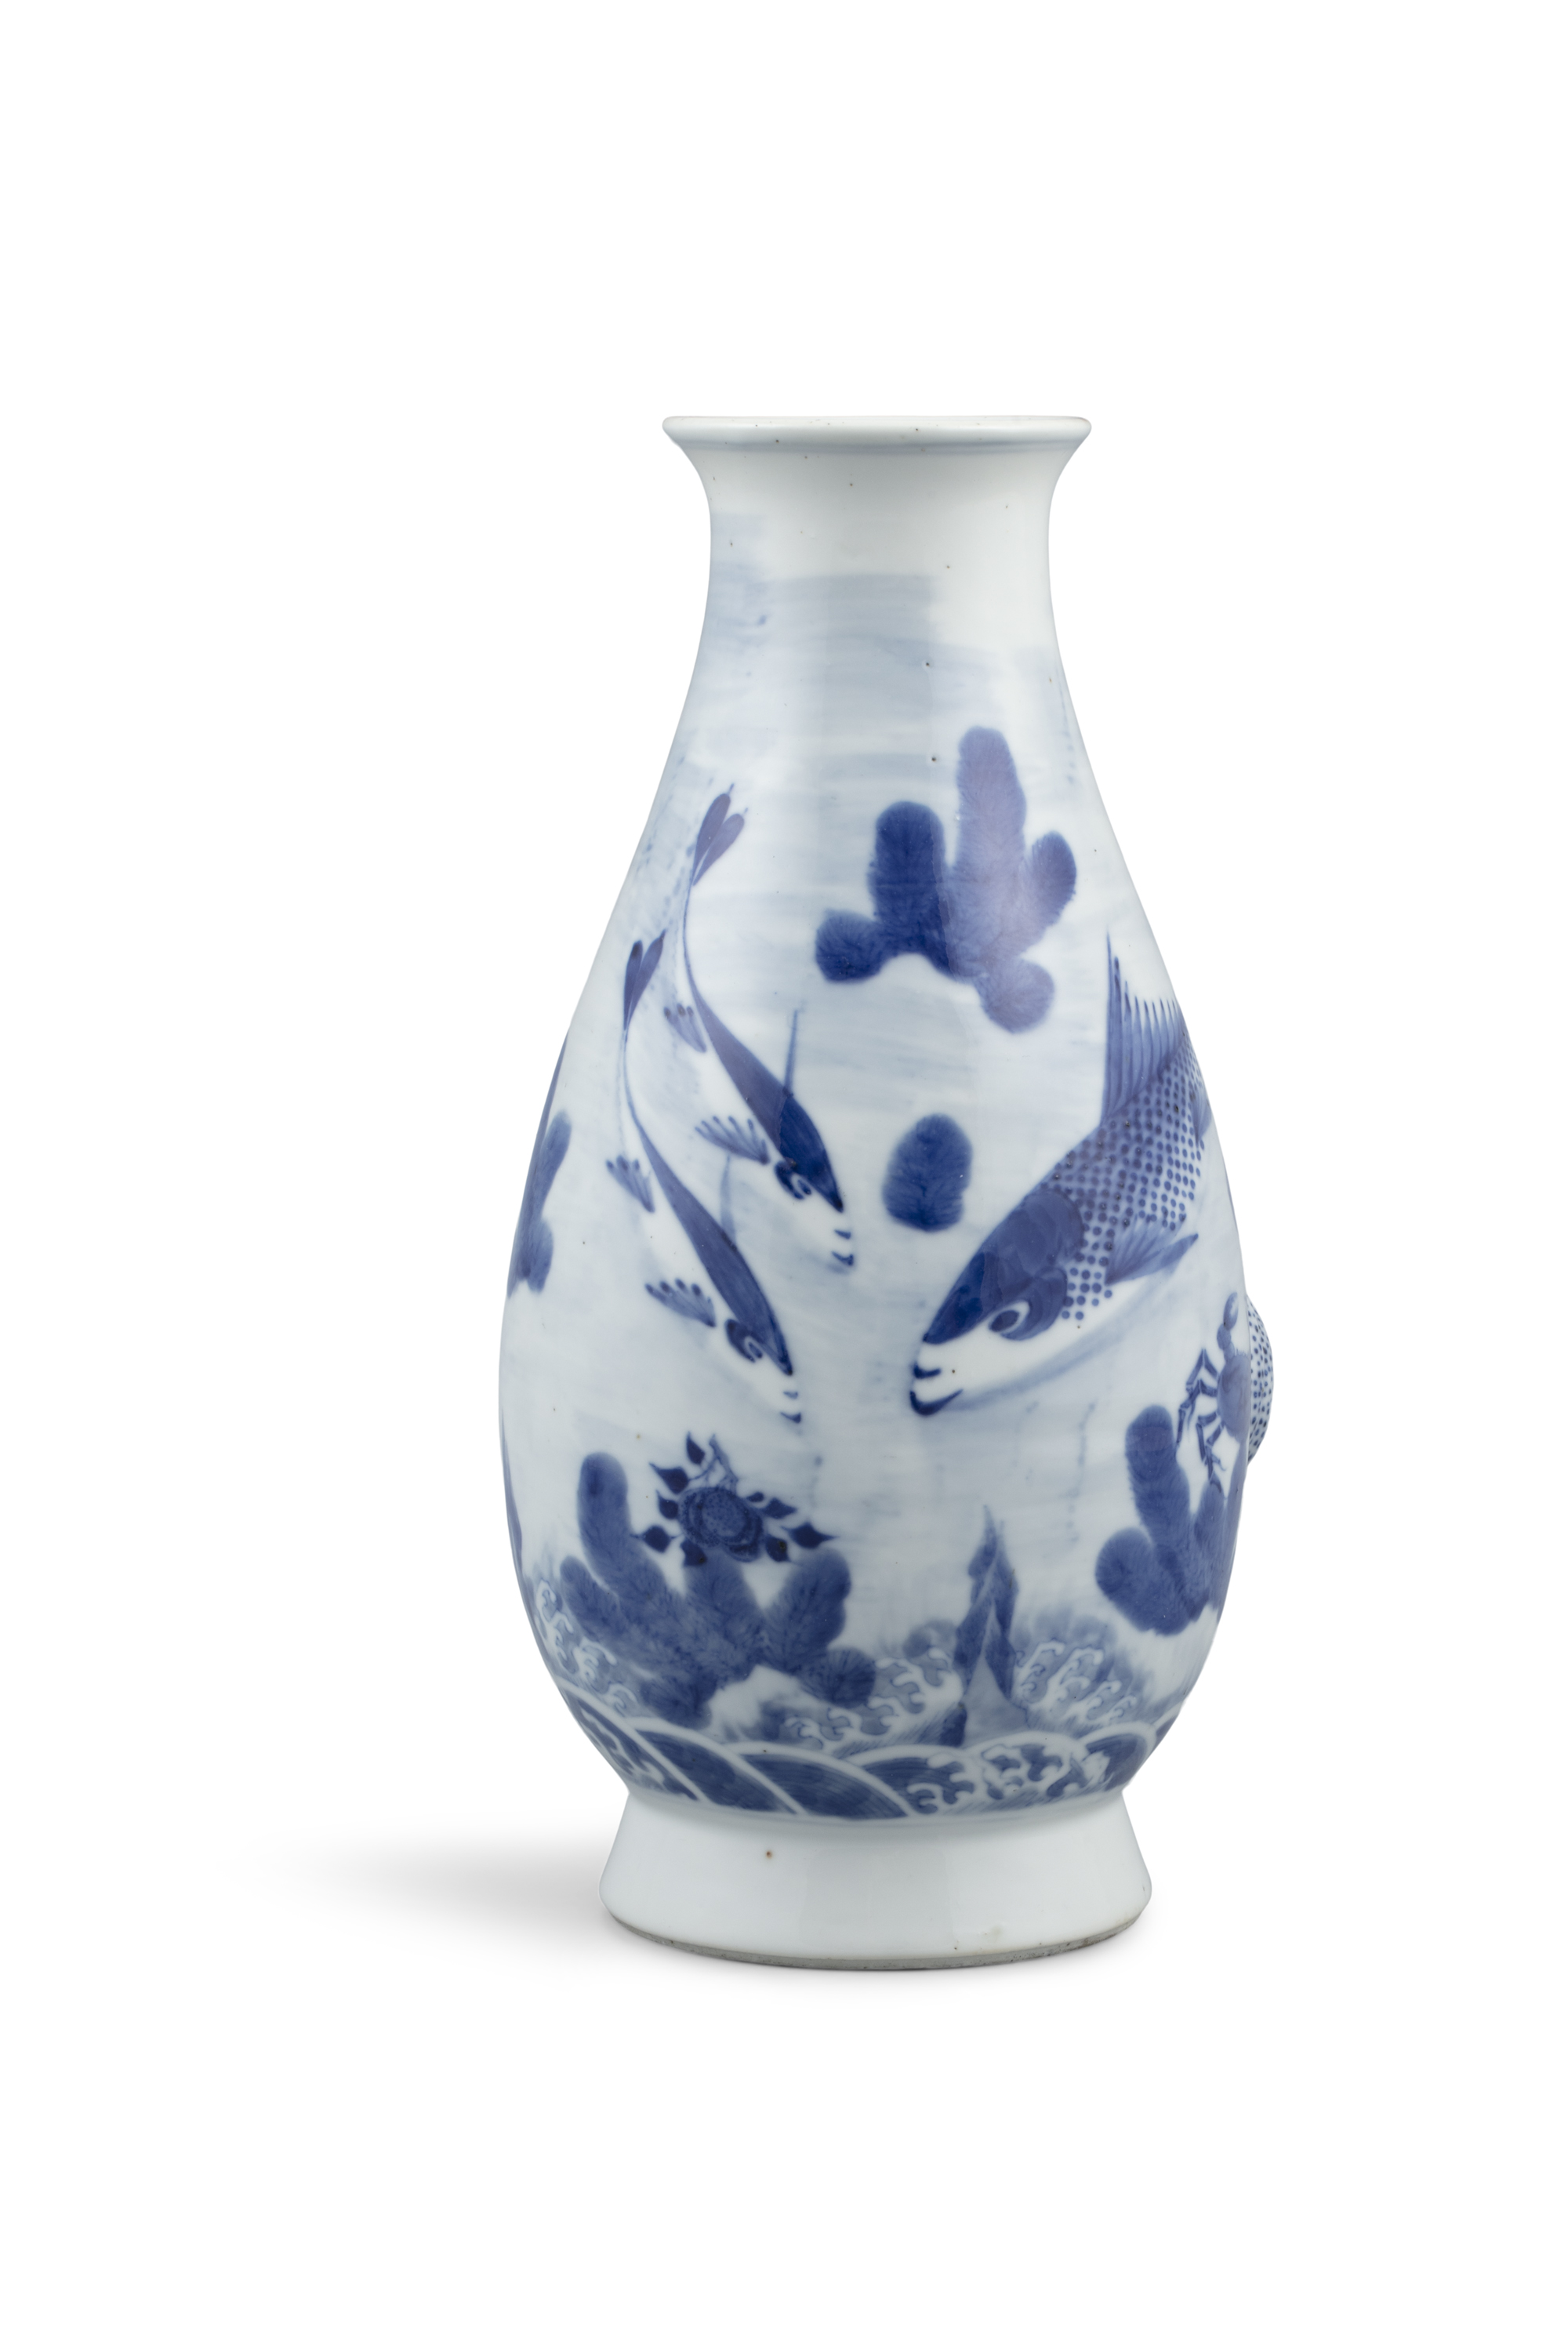 A BLUE AND WHITE 'CARPS AND CRAB' PORCELAIN BOTTLE VASE Most probably Japan, Meiji to Showa period